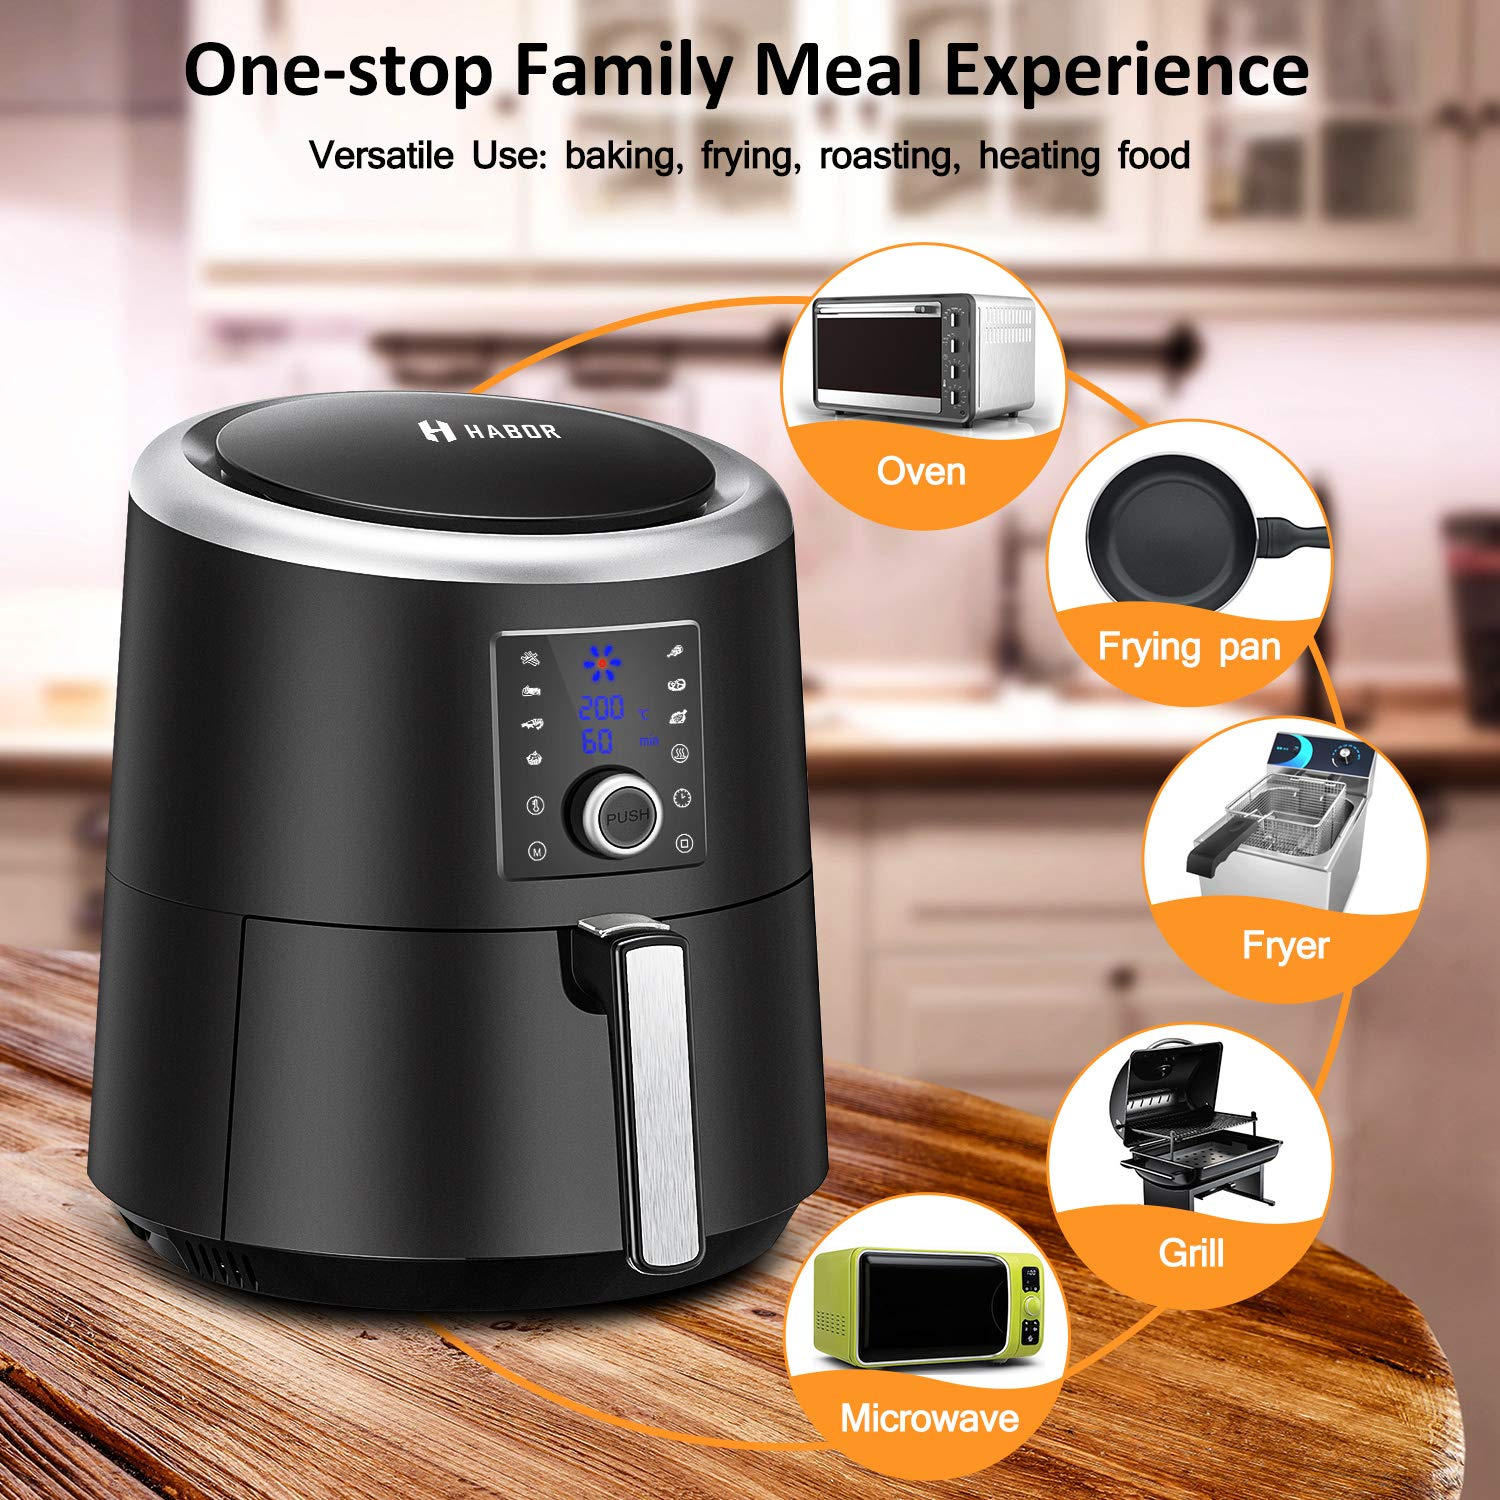 Nonstick Basket Break-point Memory Electric Hot Air Fryers Oven Oilless Cooker HABOR Air Fryer 3.6L 1500W with Neon Blue Display 2 Years Warranty for Healthy Oil Free /& Low Fat Cooking